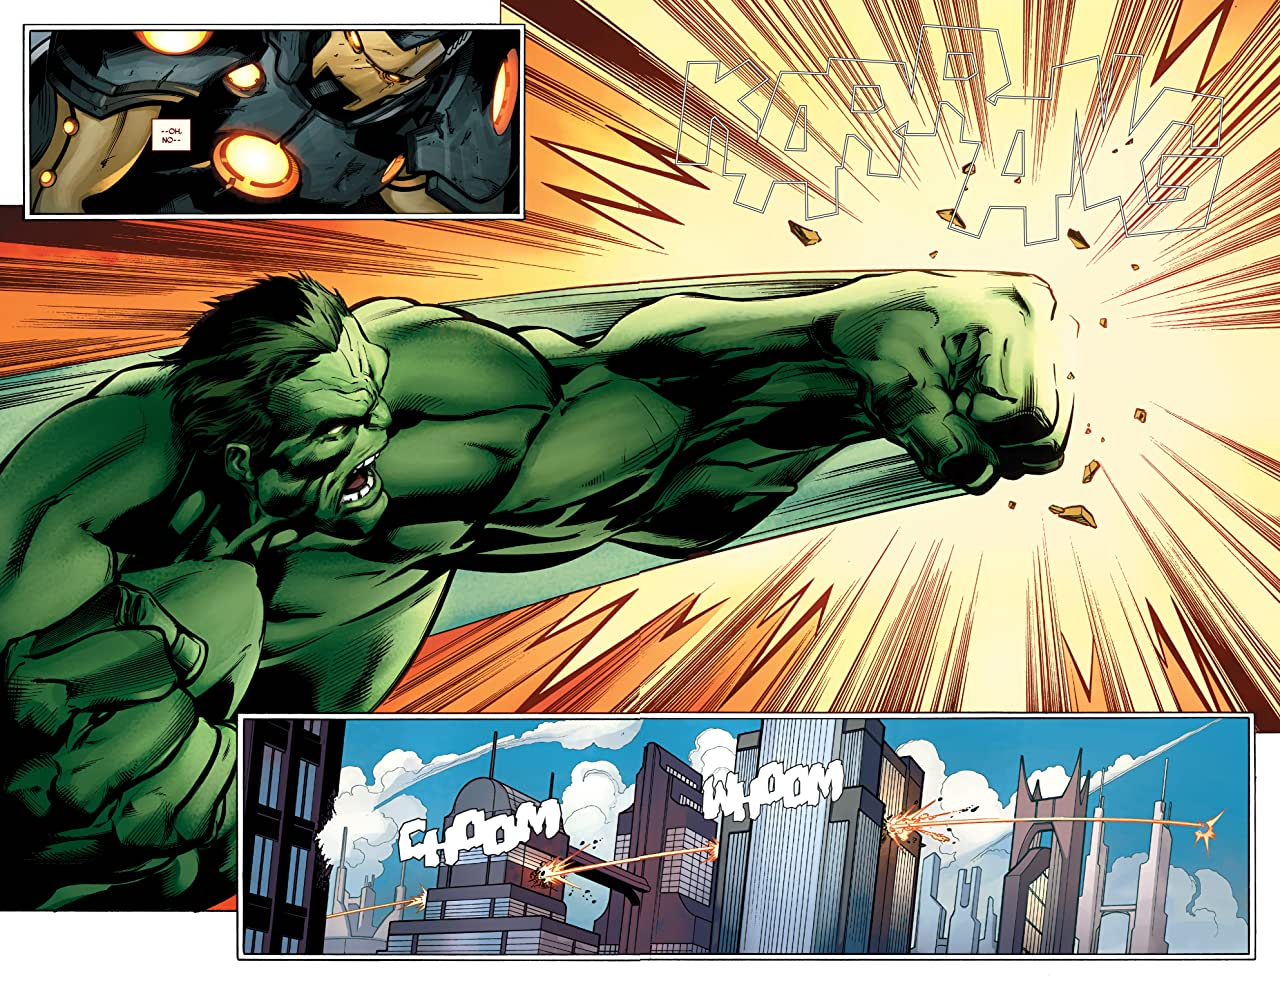 Original Sin: Hulk vs. Iron Man #1